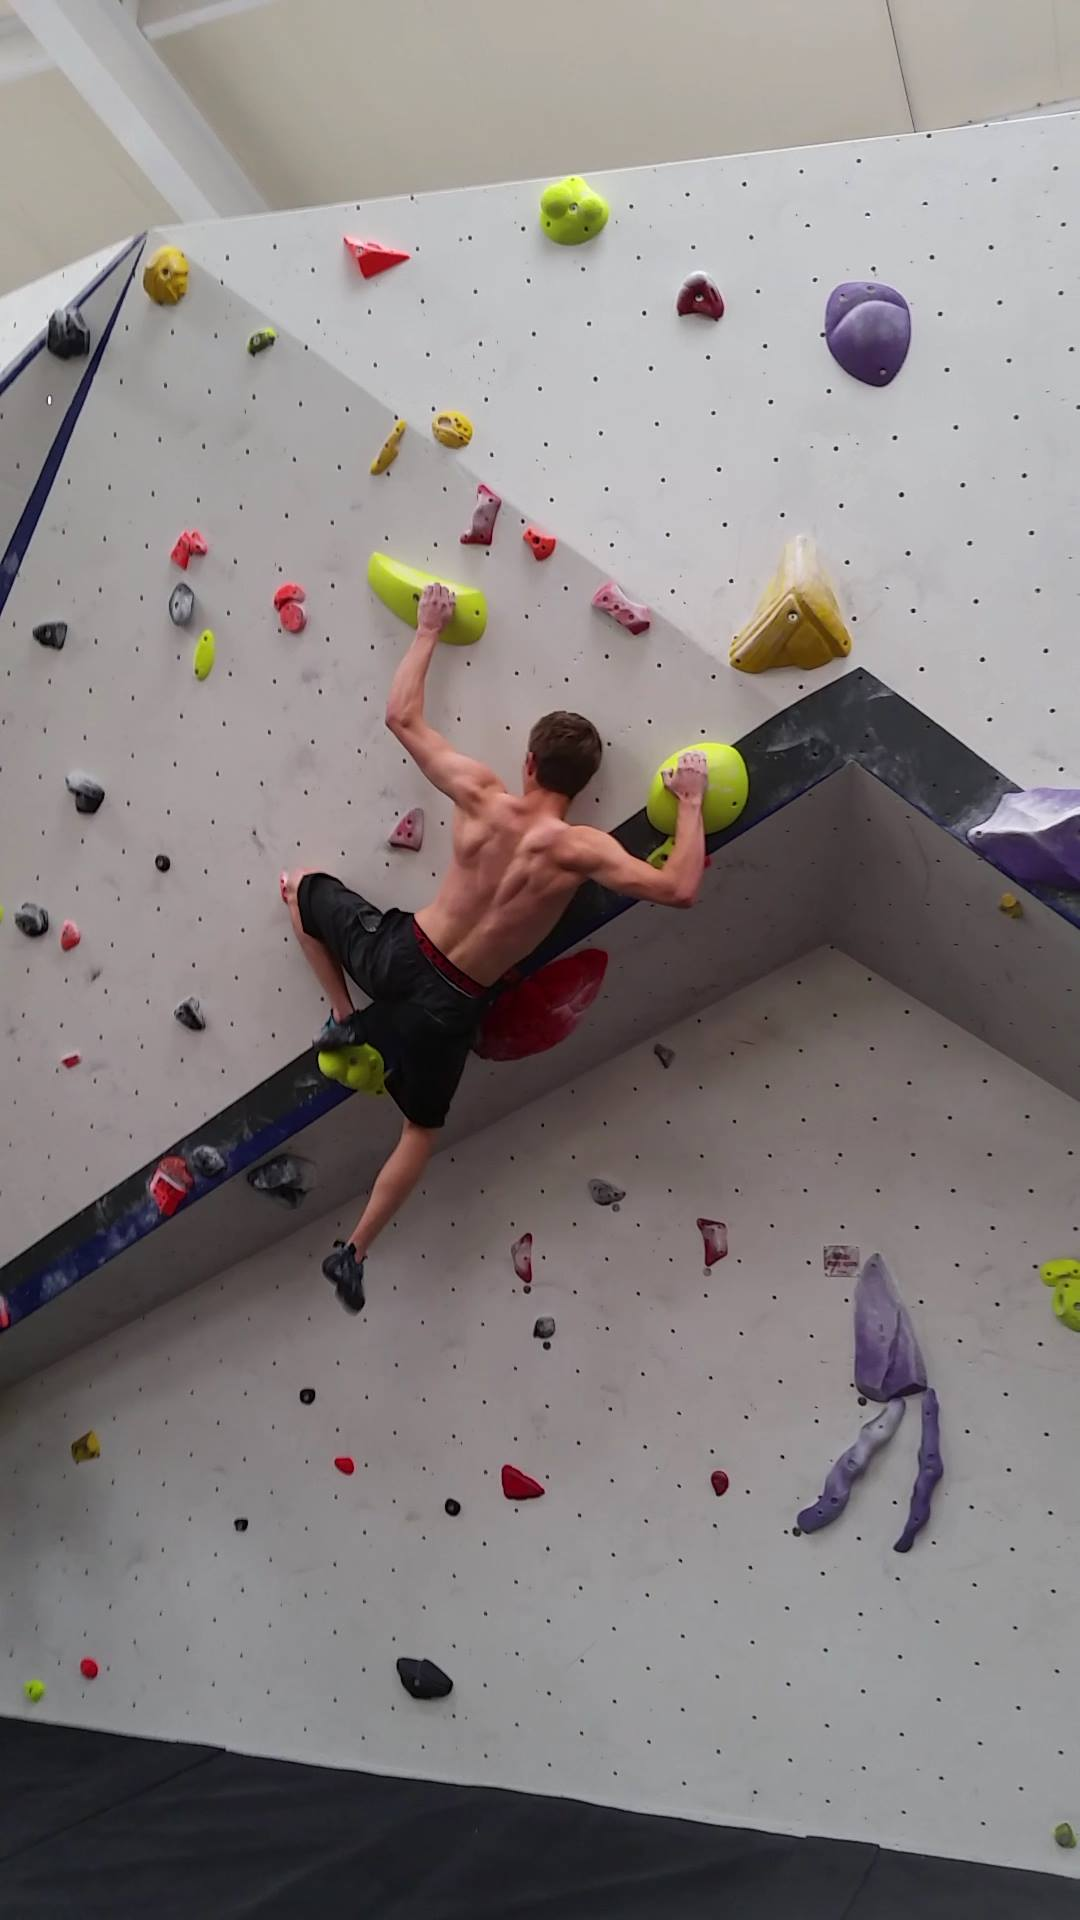 Climbing Shoulder Injuries can happen easily. Climber on a boulder problem with highly activated shoulders.